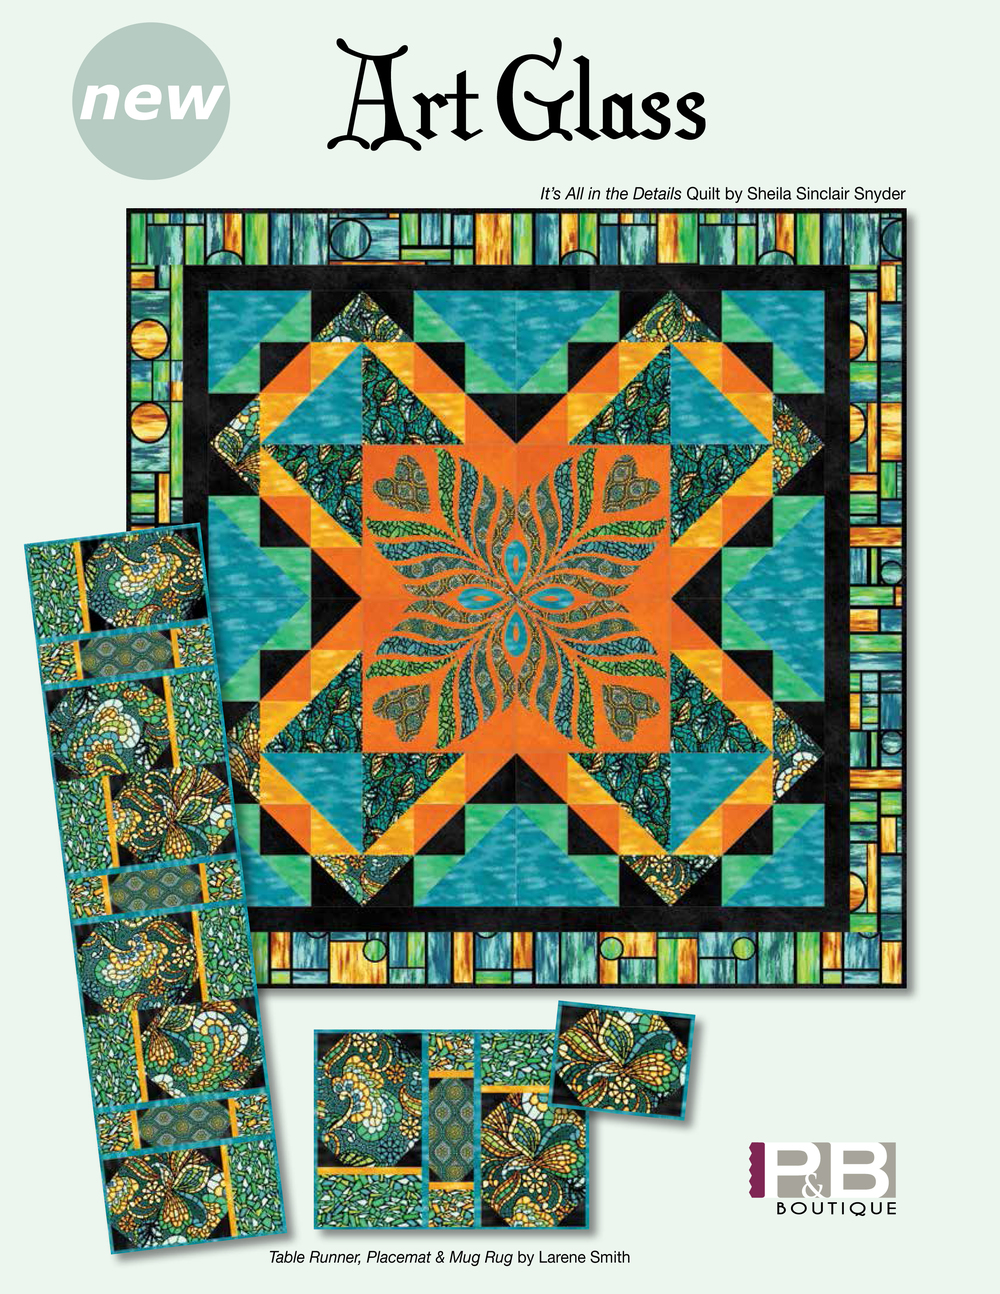 It's All In The Details Quilt by: Sheila Sinclair Snyder Art Glass